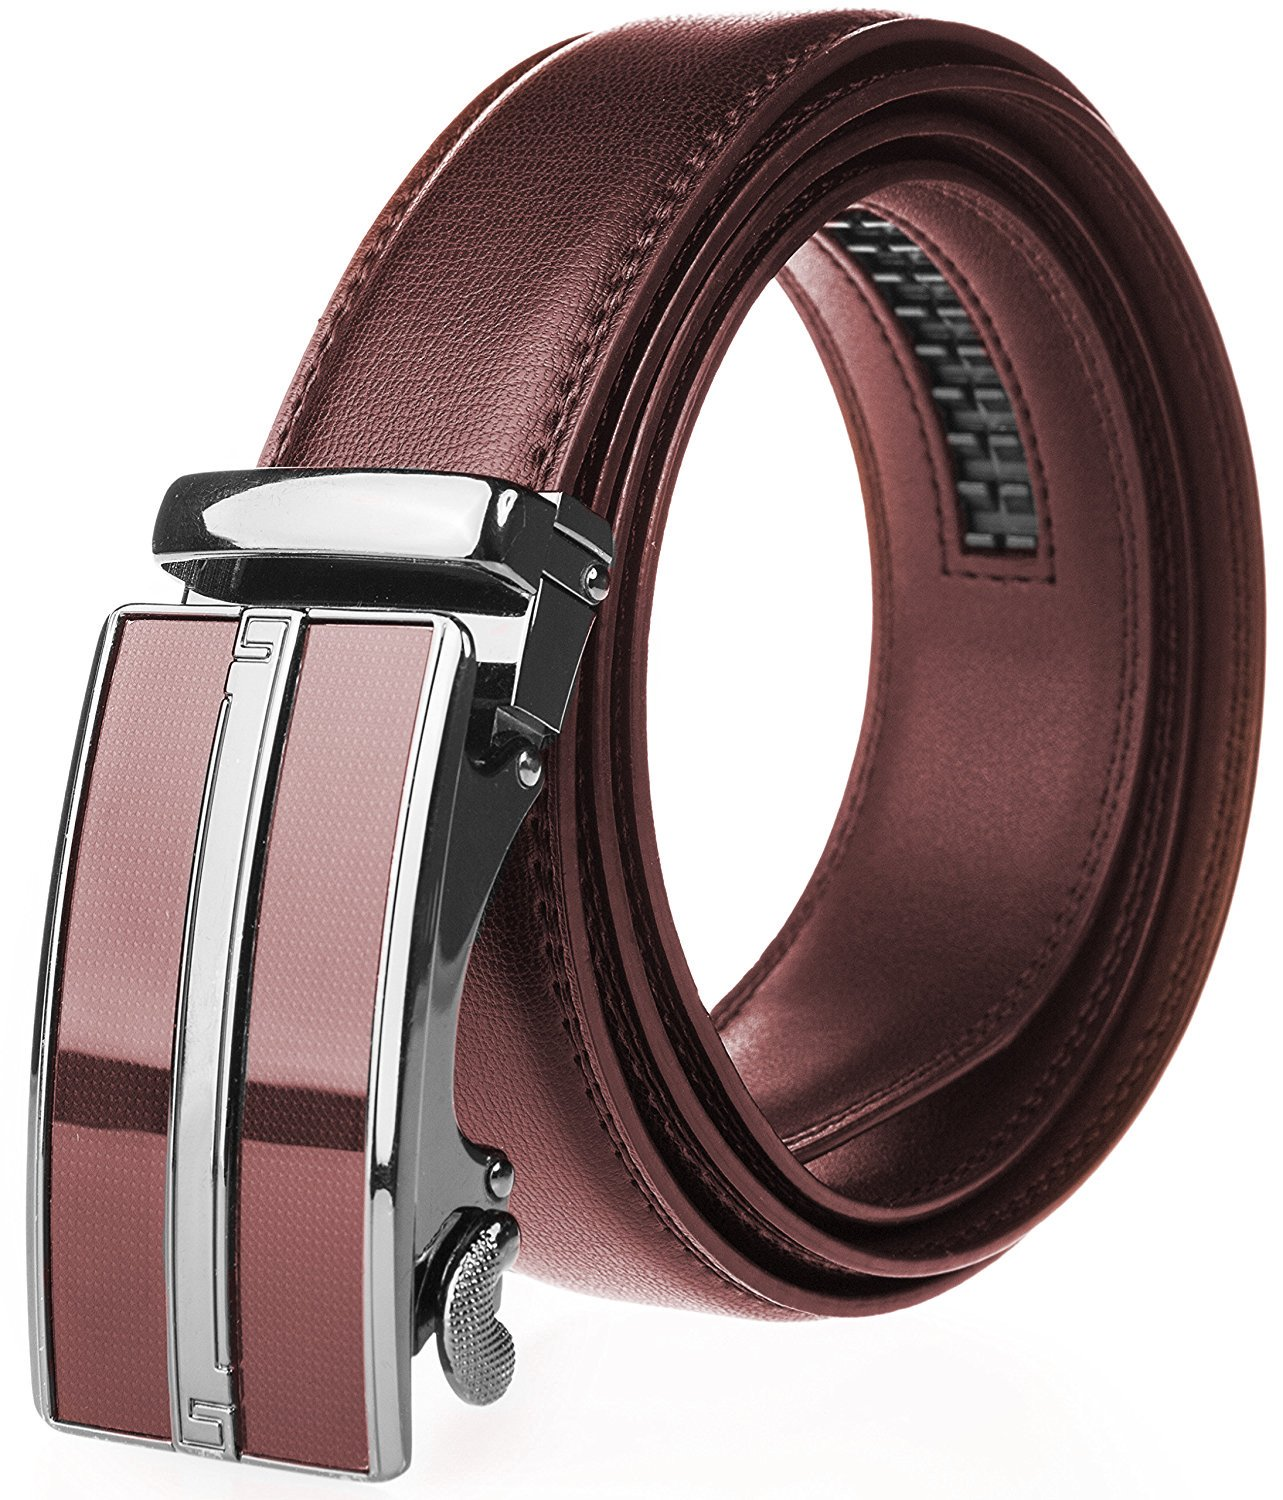 M. Bettino Mens Leather Ratchet Dress Belt With Linxx Buckle, Waist Size Up to 46'' with Automatic Buckle